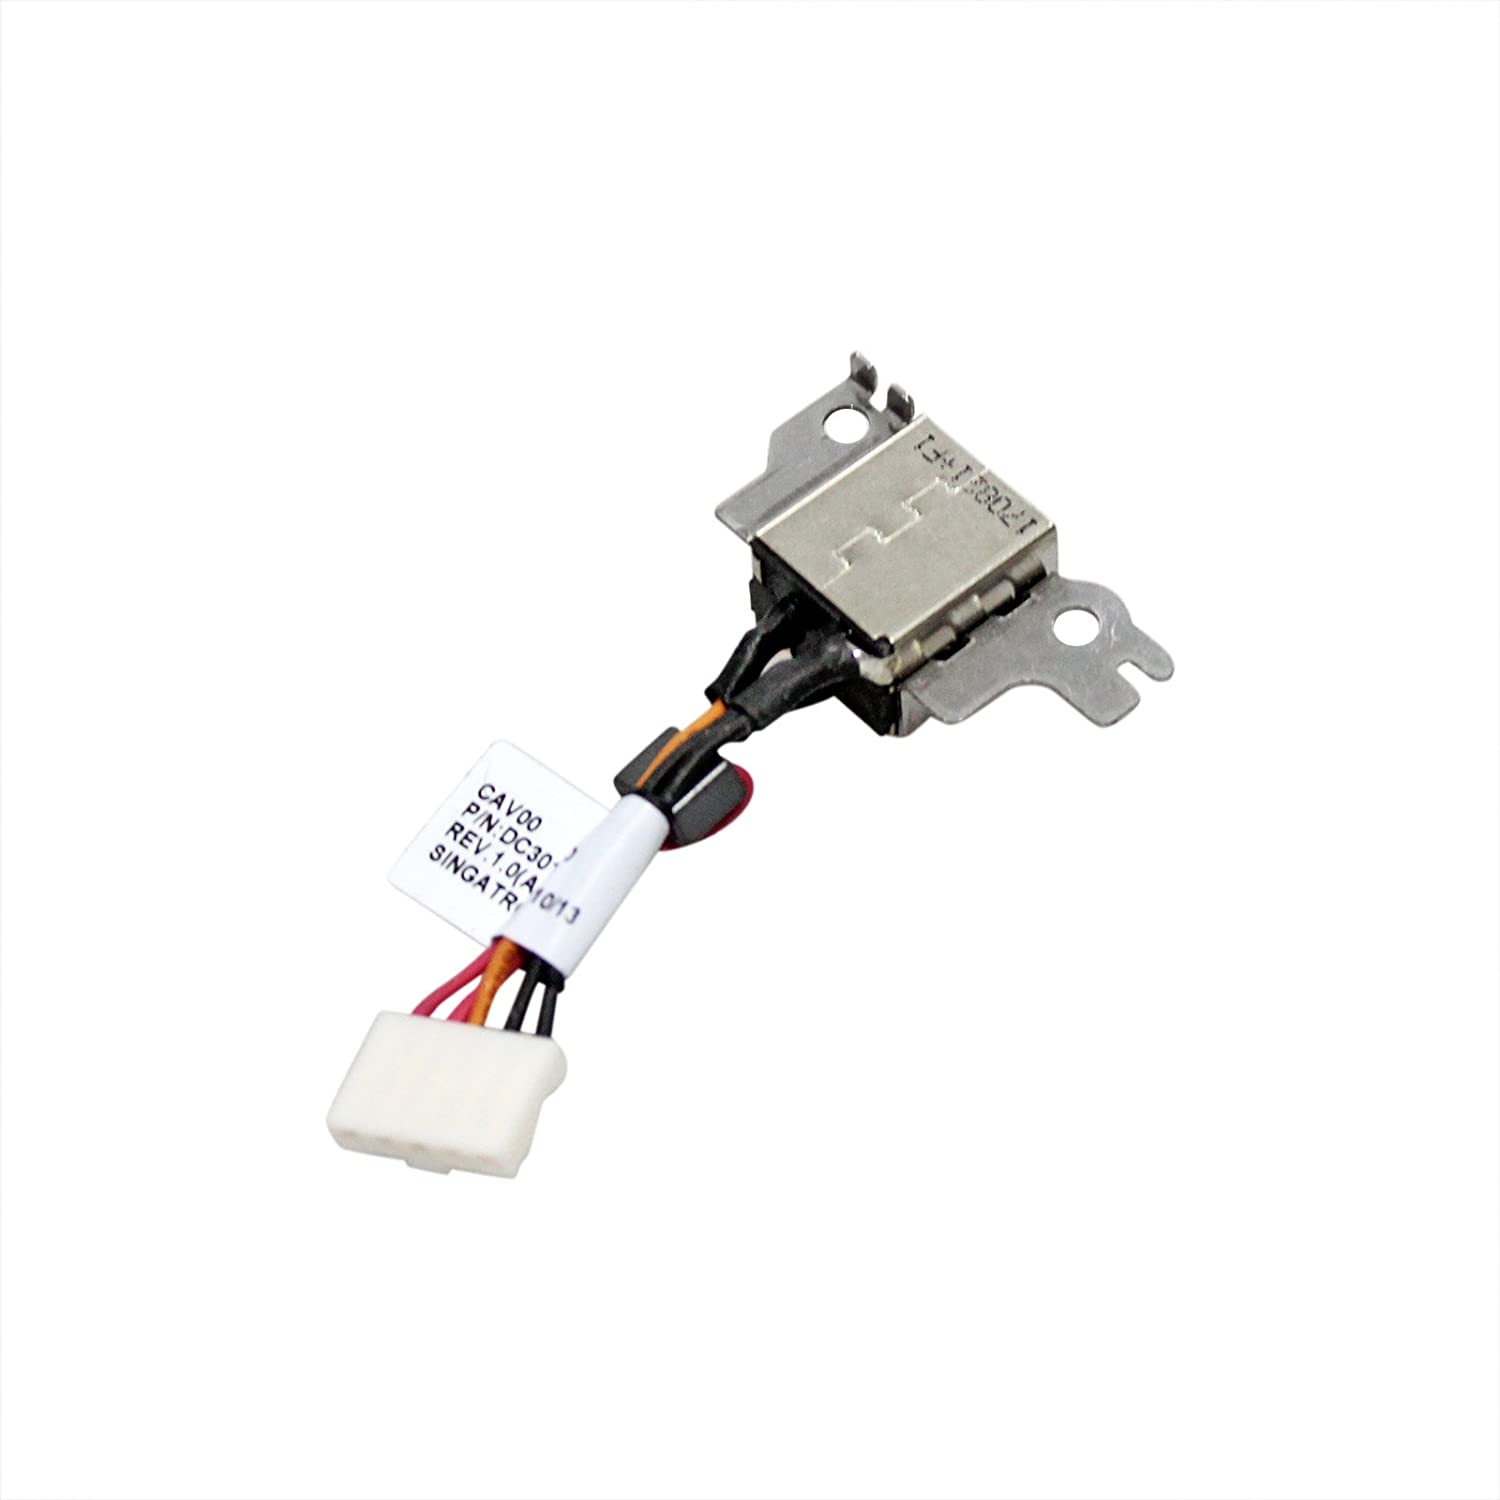 CN, Cable Length: Normal Cables Occus New Power DC Jack with Cable for DELL 11Z Series DC30100870L Occus